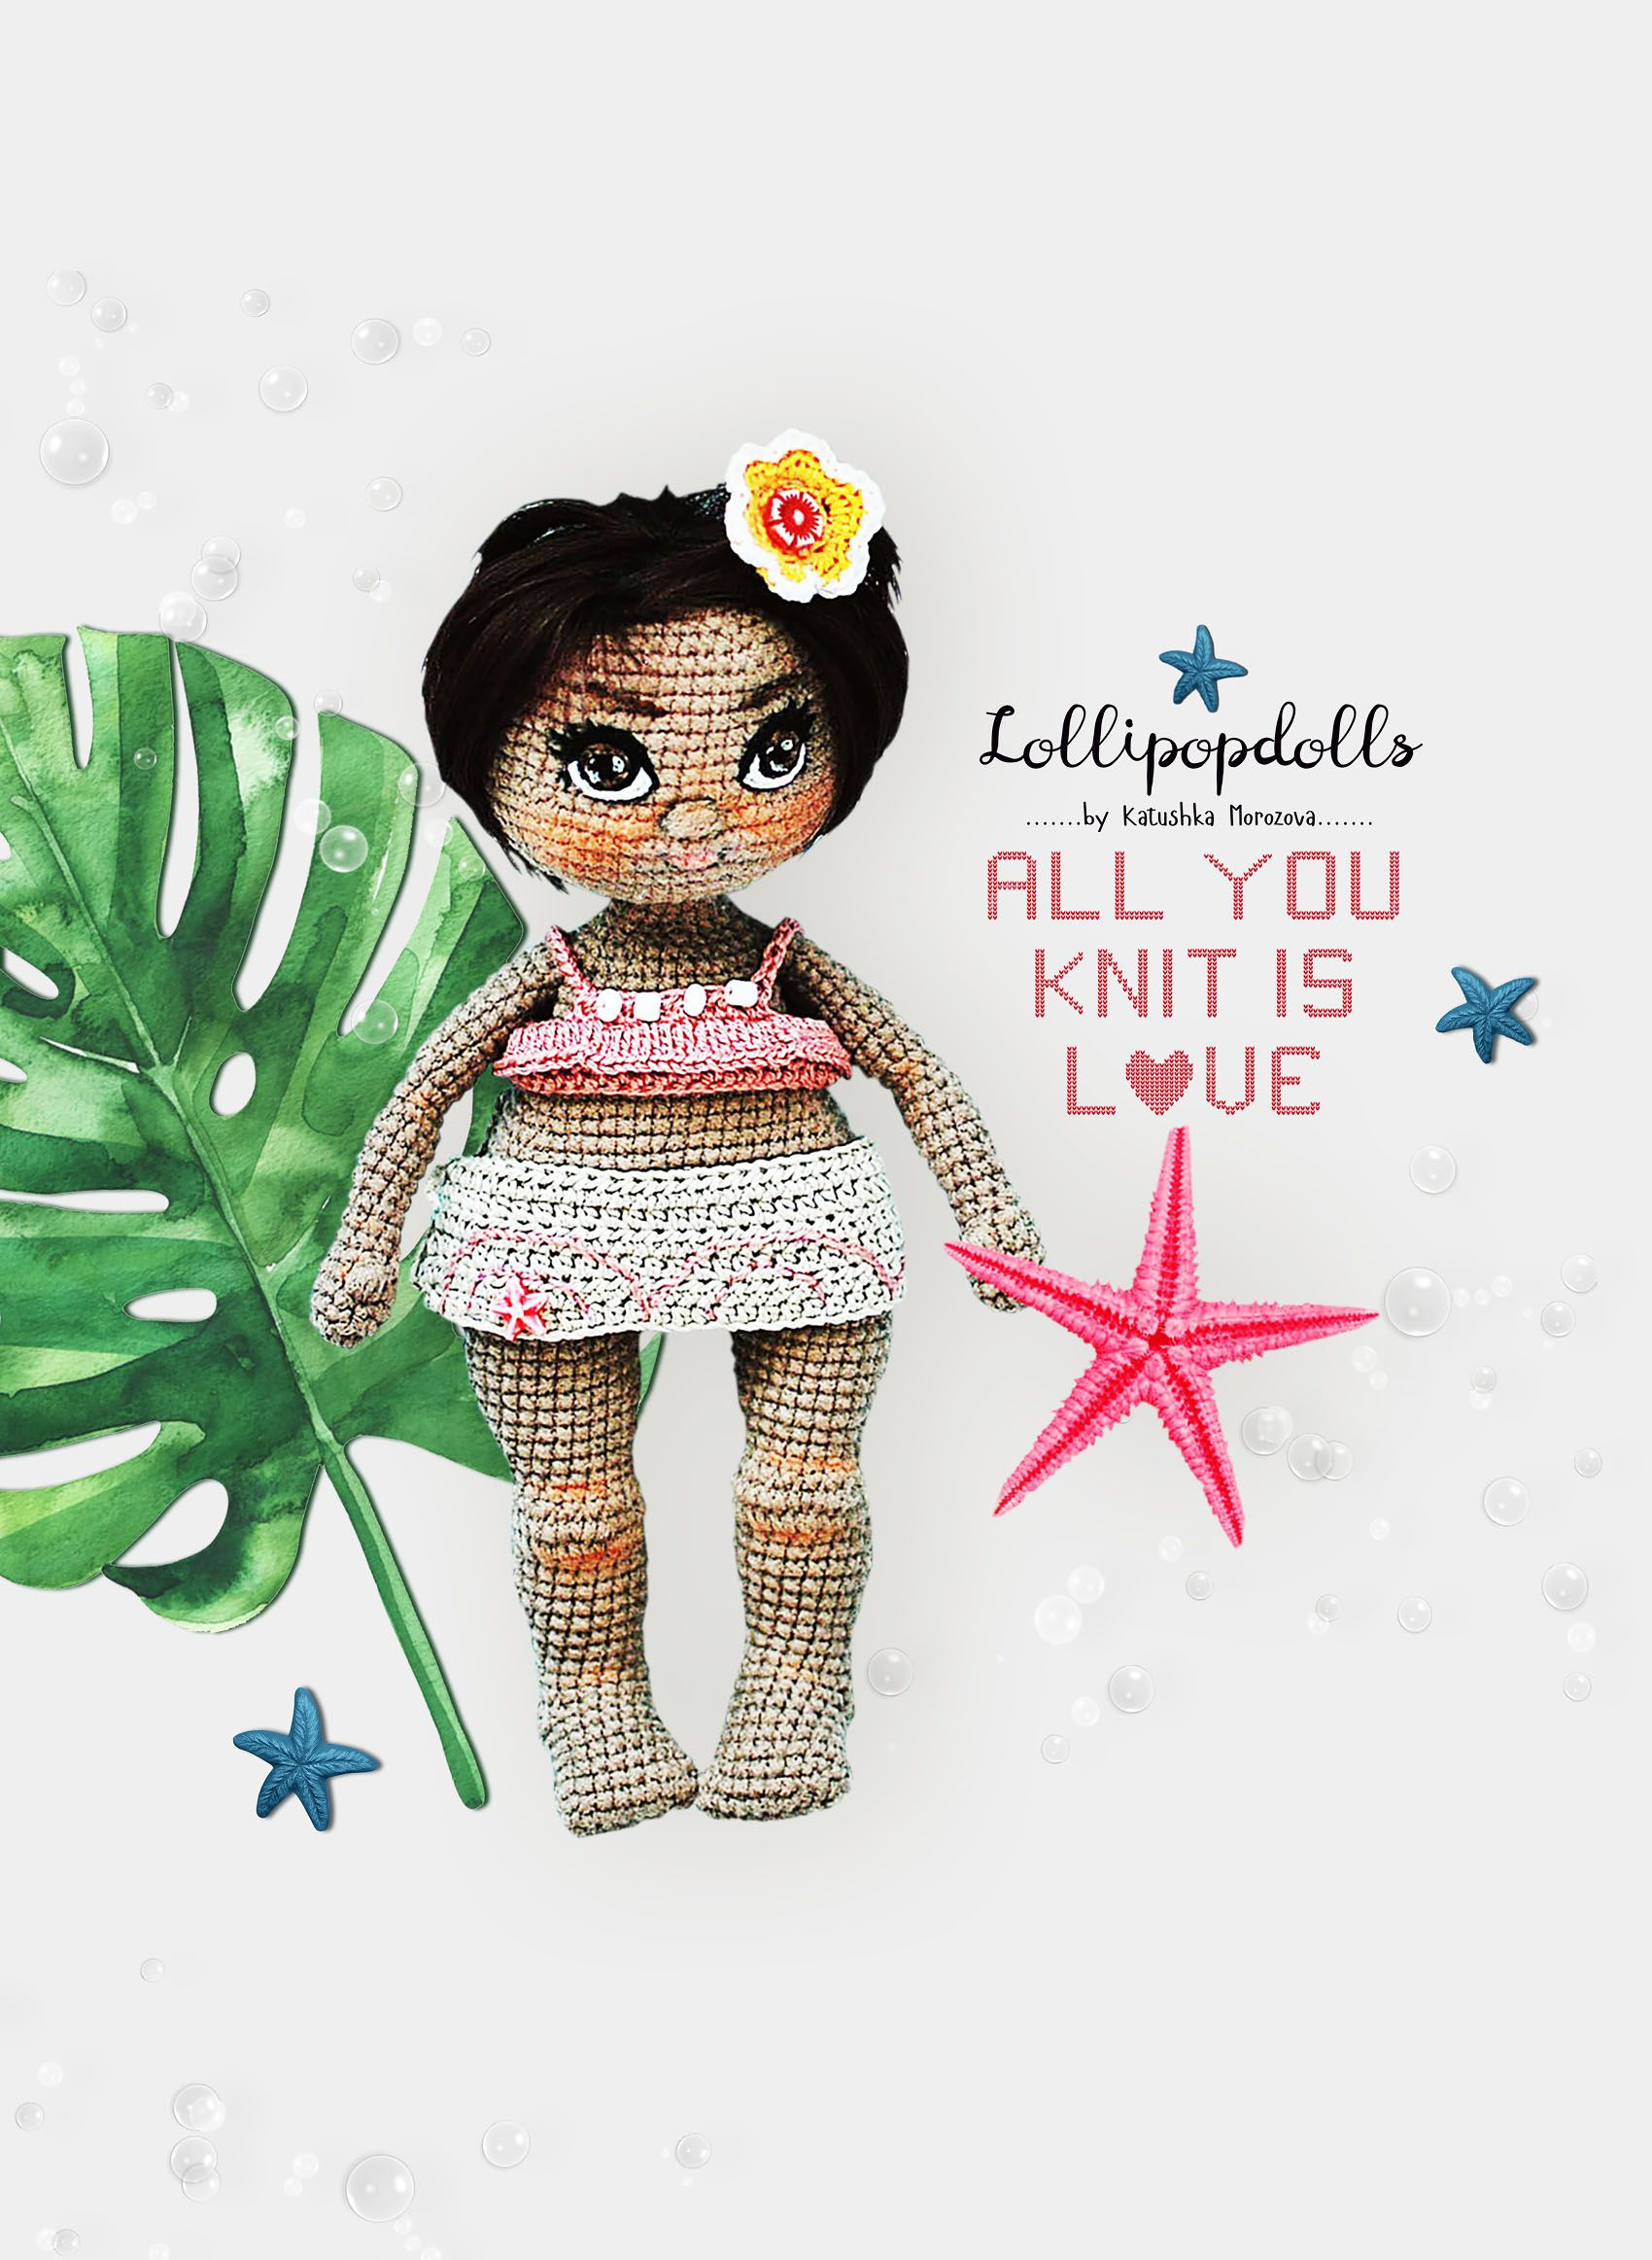 English | PDF | Crochet Doll Pattern | Amigurumi Doll | stuffed doll pattern Katushka Morozova  #instructionstodollpatterns